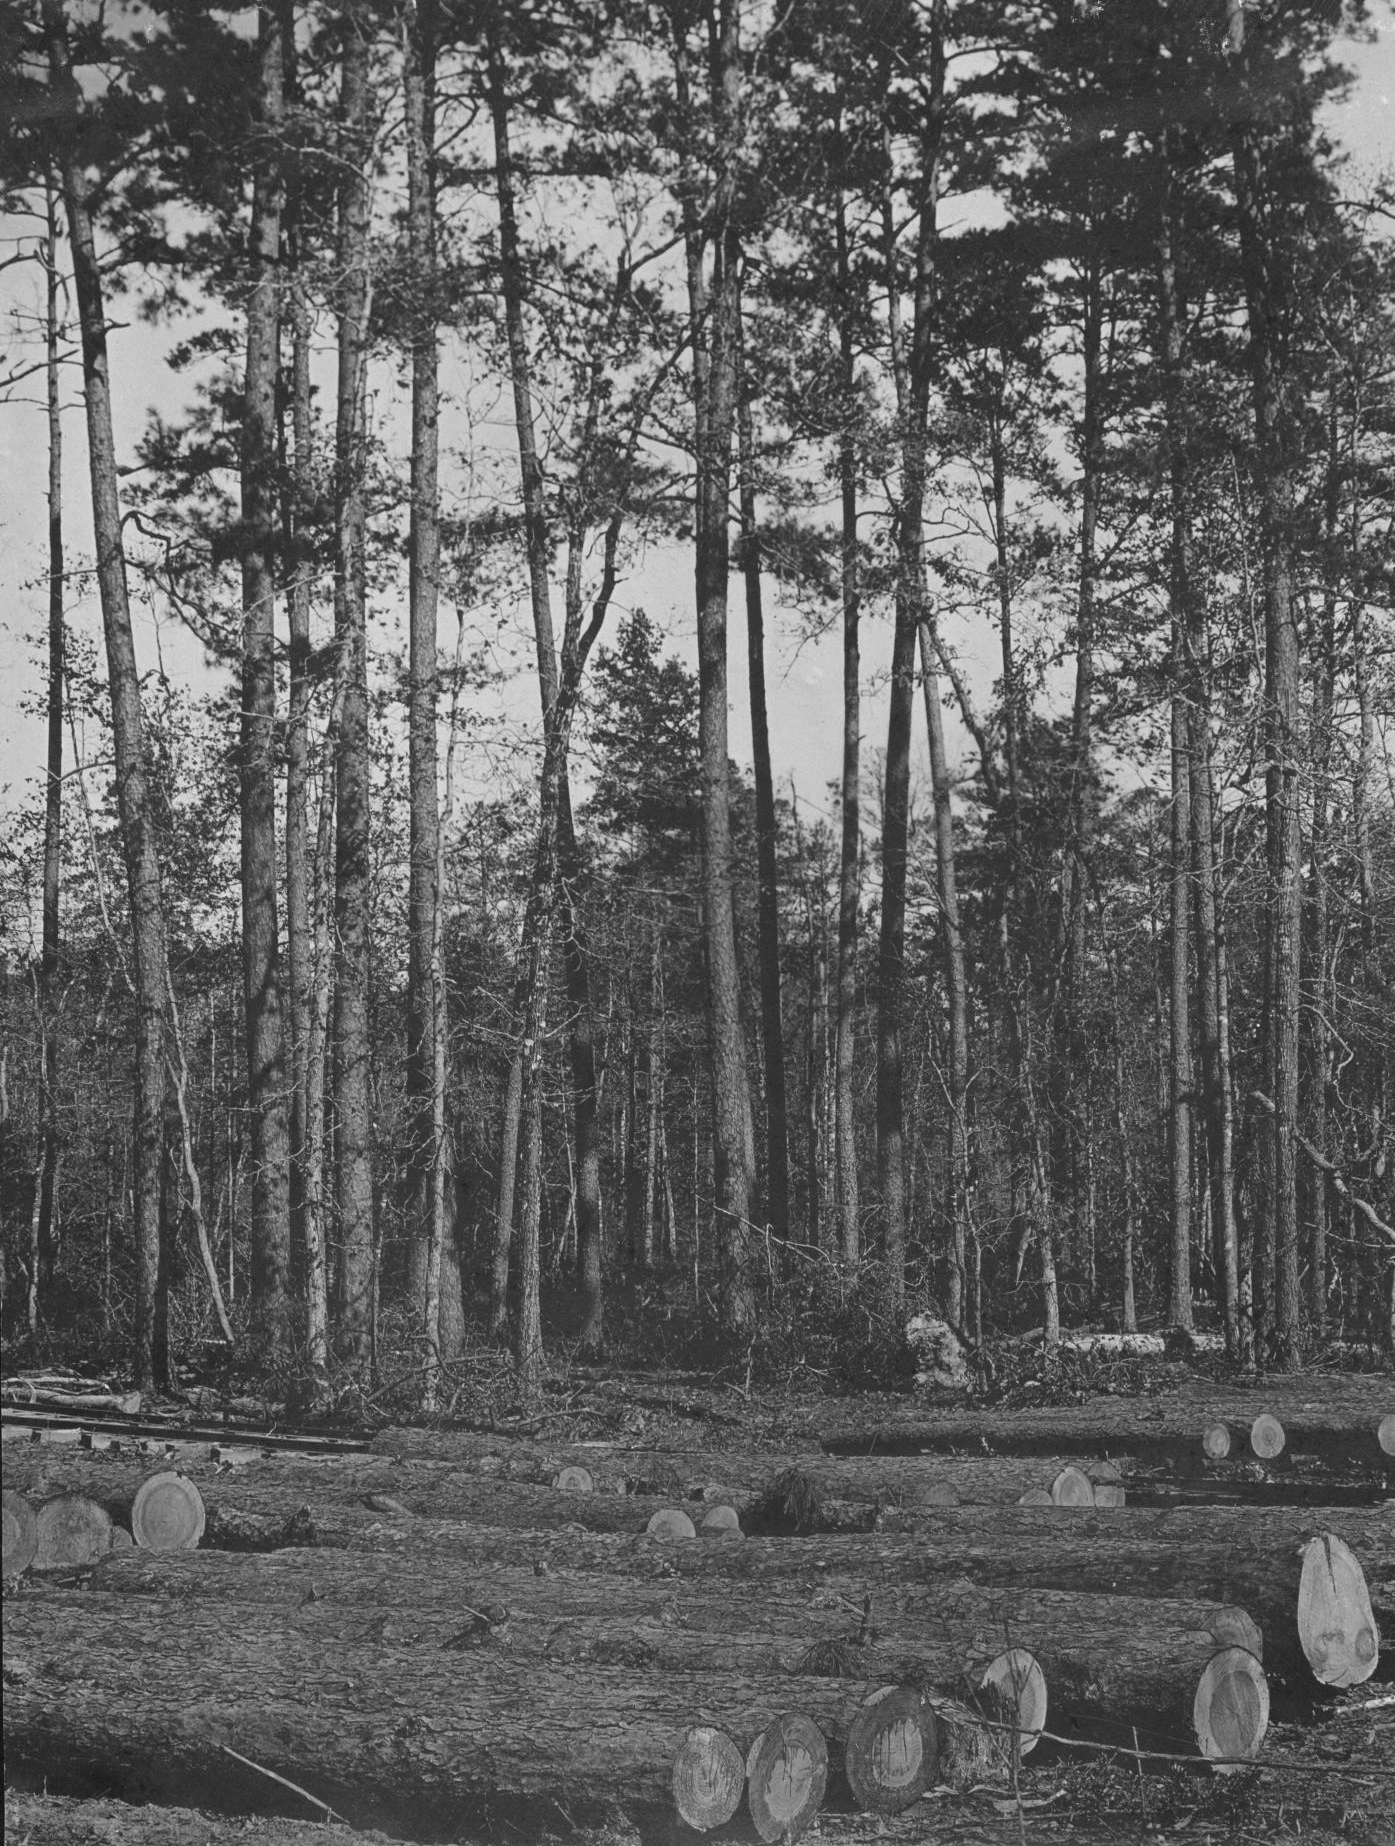 S. P. 336 Camp 1 Log Ramp and Cut Over Pine